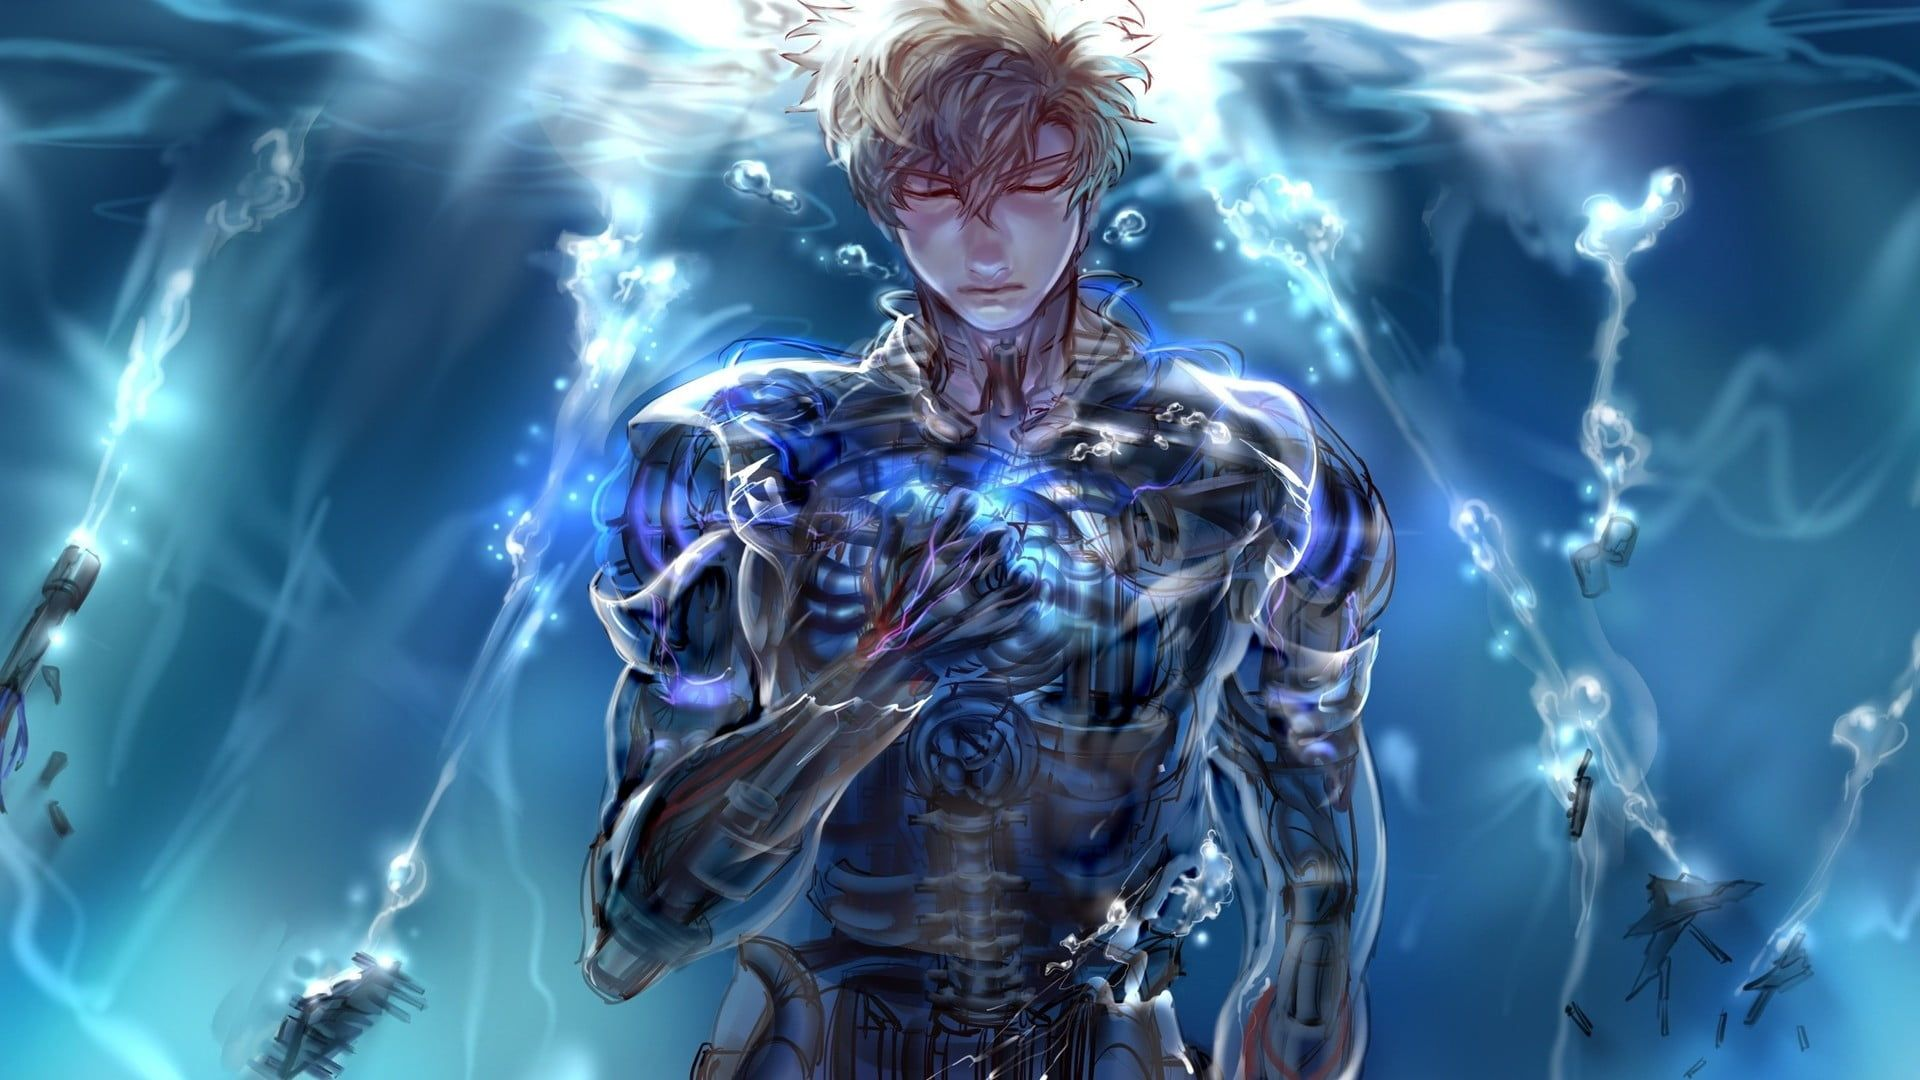 One Punch Man Genos Boy Anime One Punch Man Anime One Punch Man